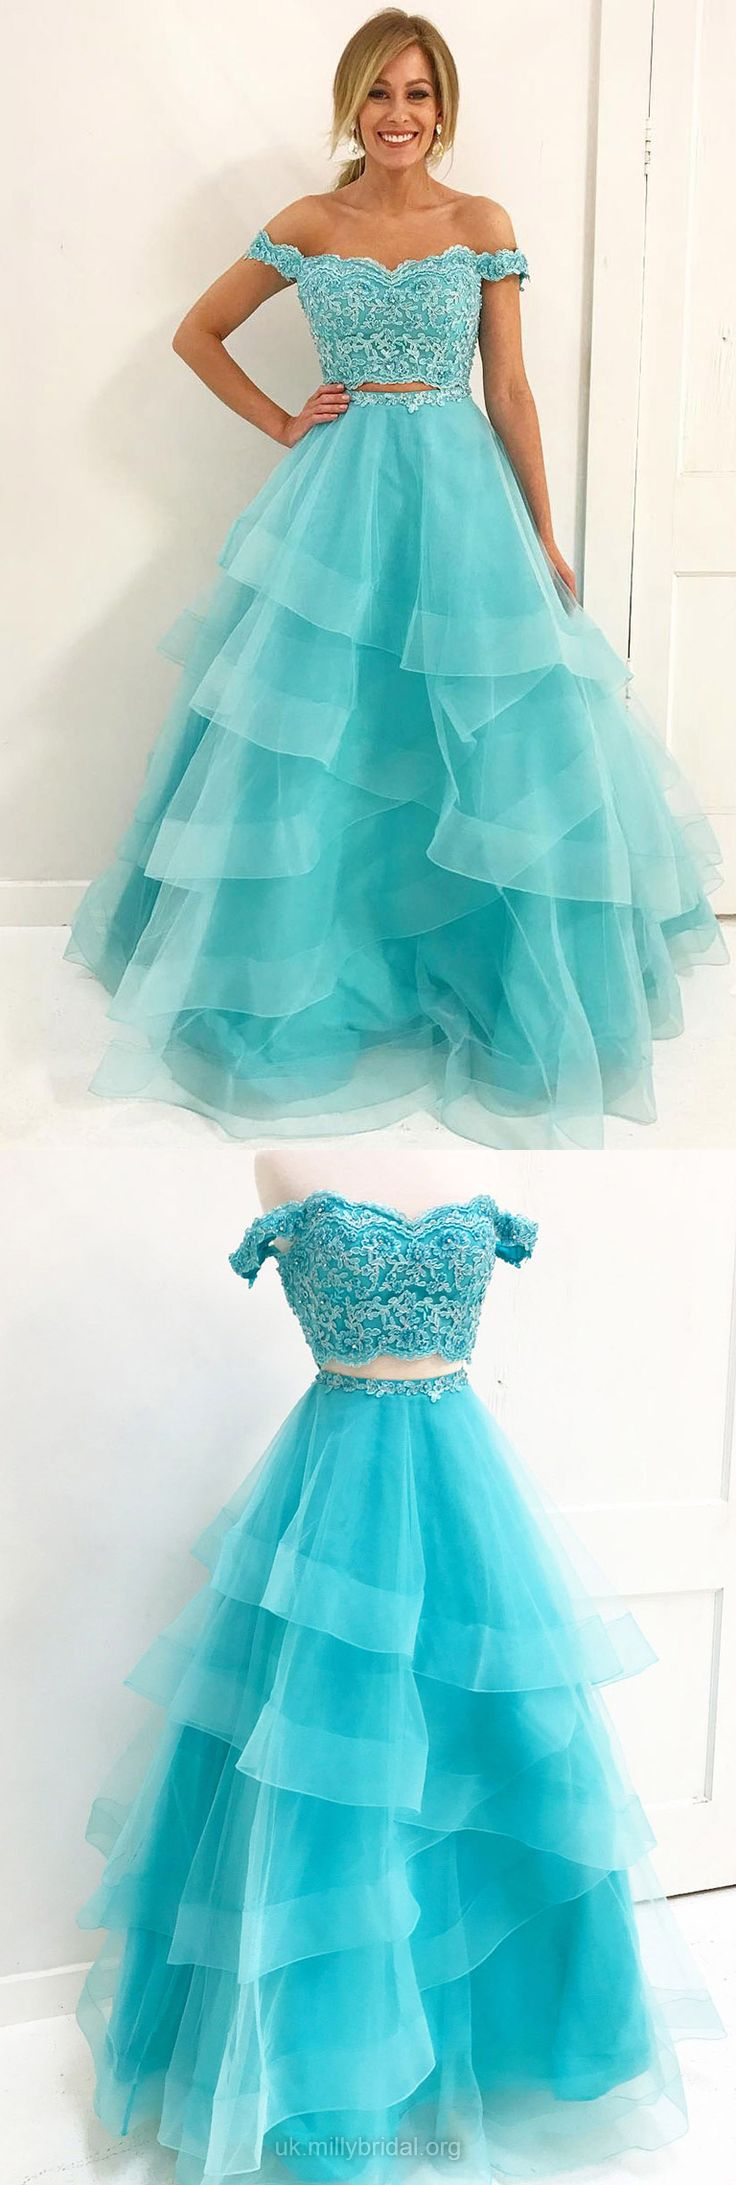 2028 best p r o m d r e s s e s images on Pinterest | Ball gown ...